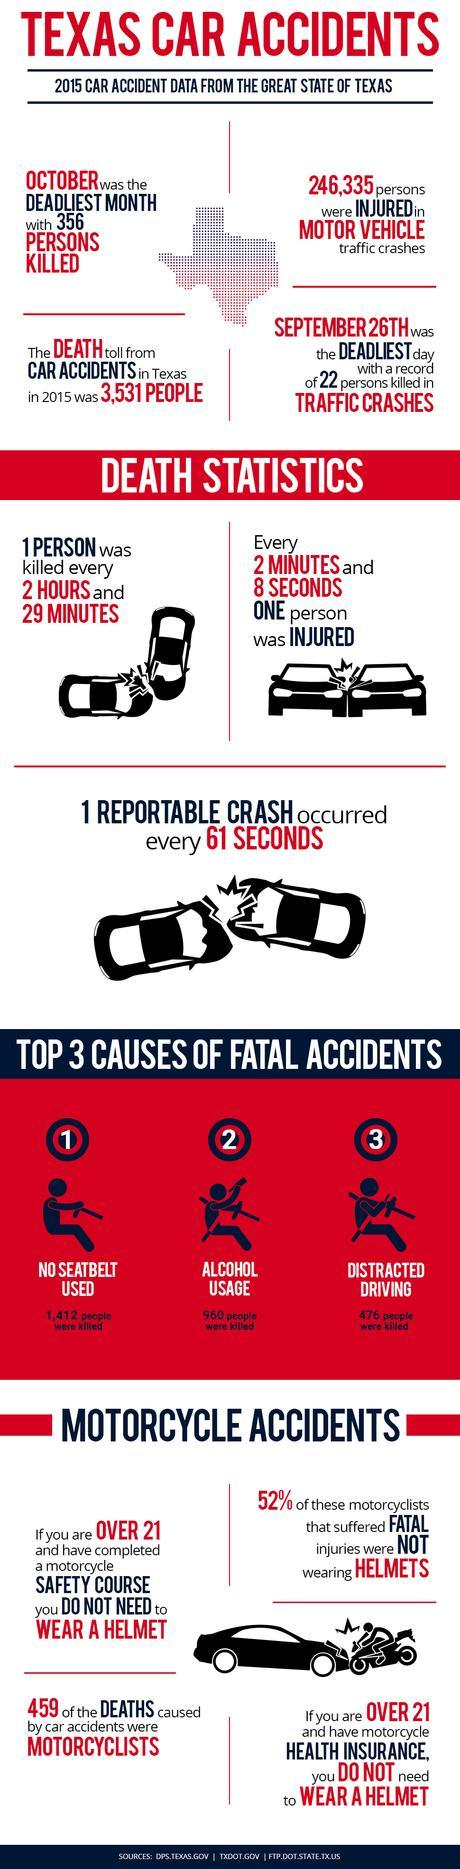 Texas Car Accidents Statistic